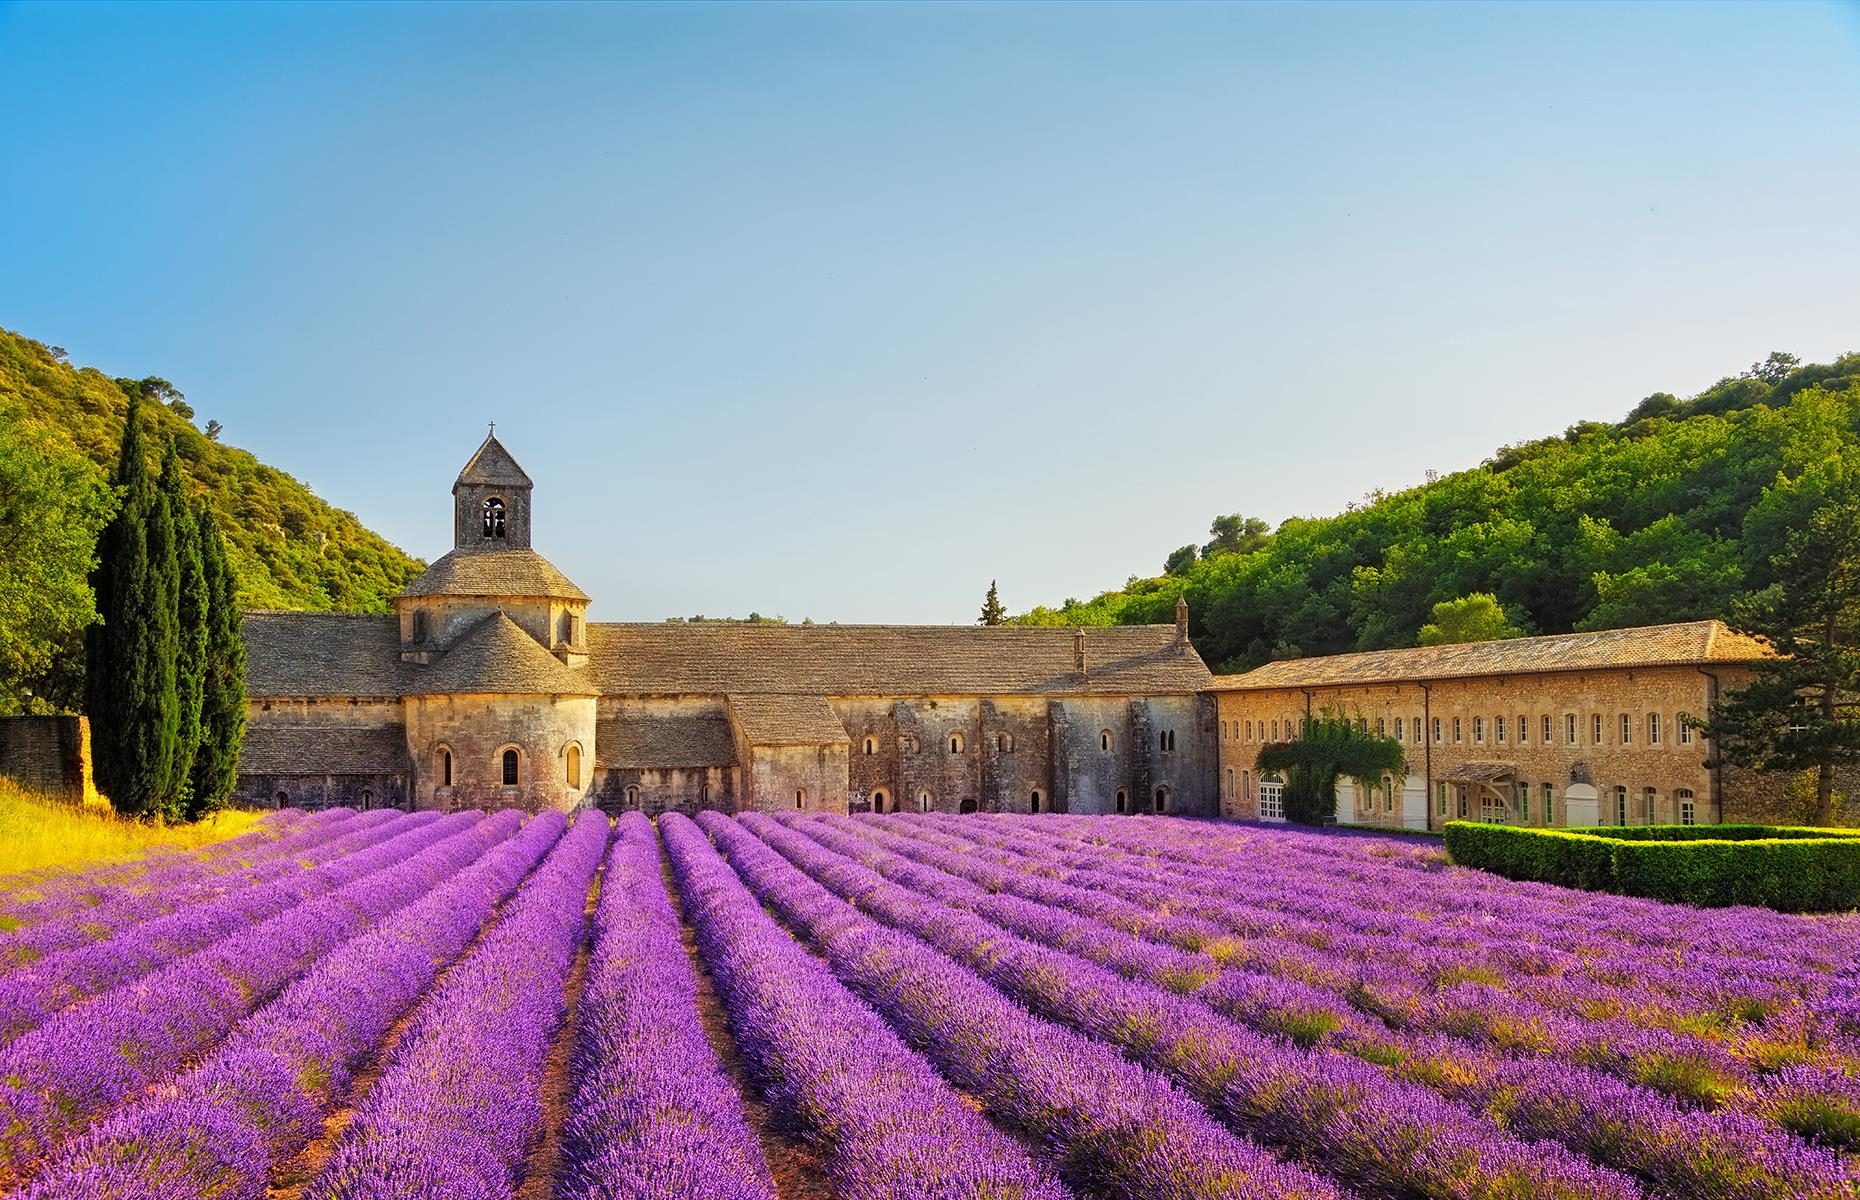 Slide 20 of 41: The lavender fields of France's Provence region explode in a fragrant haze of purple from around mid-June up until August (though they're at their peak in early July). The most concentration of lavender fields is on the high plateau around Sault, at the foot of the Mont Ventoux and around Apt and Gordes. Lavender is an important part of life in Provence as it has countless uses, from beauty products and soaps to aromatherapy, as a natural remedy and even in cooking.